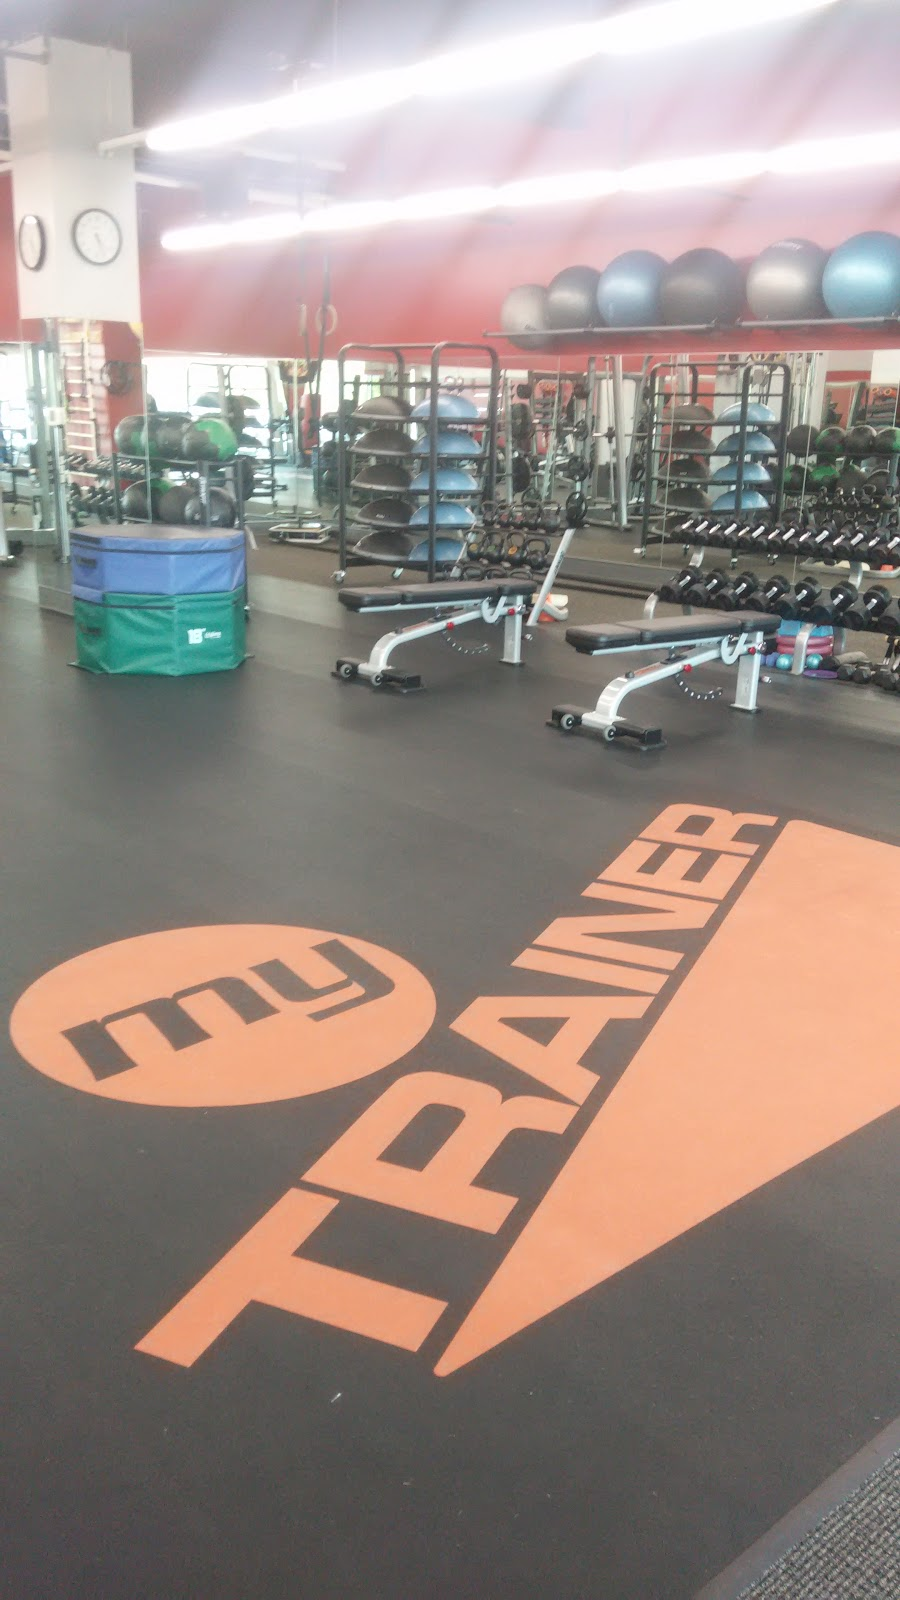 Revive Fitness - gym  | Photo 3 of 8 | Address: 2724 Dundee Rd #1, Northbrook, IL 60062, USA | Phone: (847) 780-4421